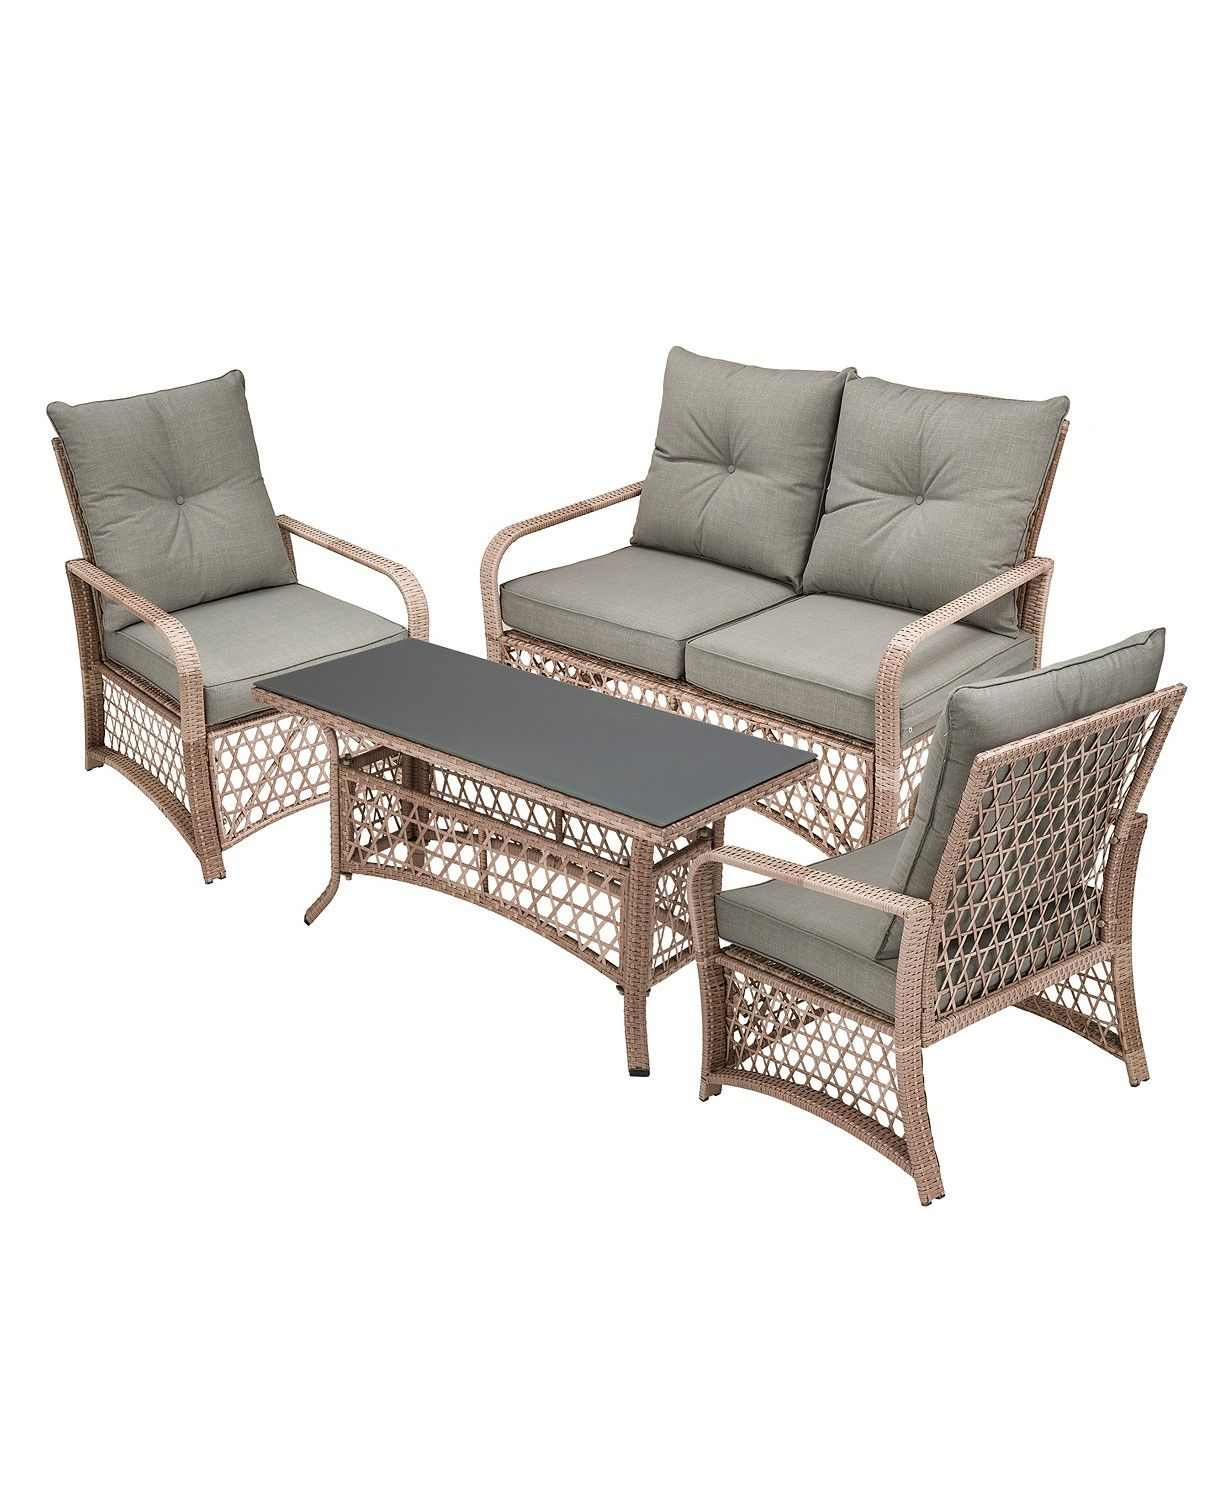 4 piece wicker patio set on glitzhome 4 piece outdoor patio wicker chair set reviews furniture macy s conversation set patio outdoor deck furniture patio furniture sets pinterest